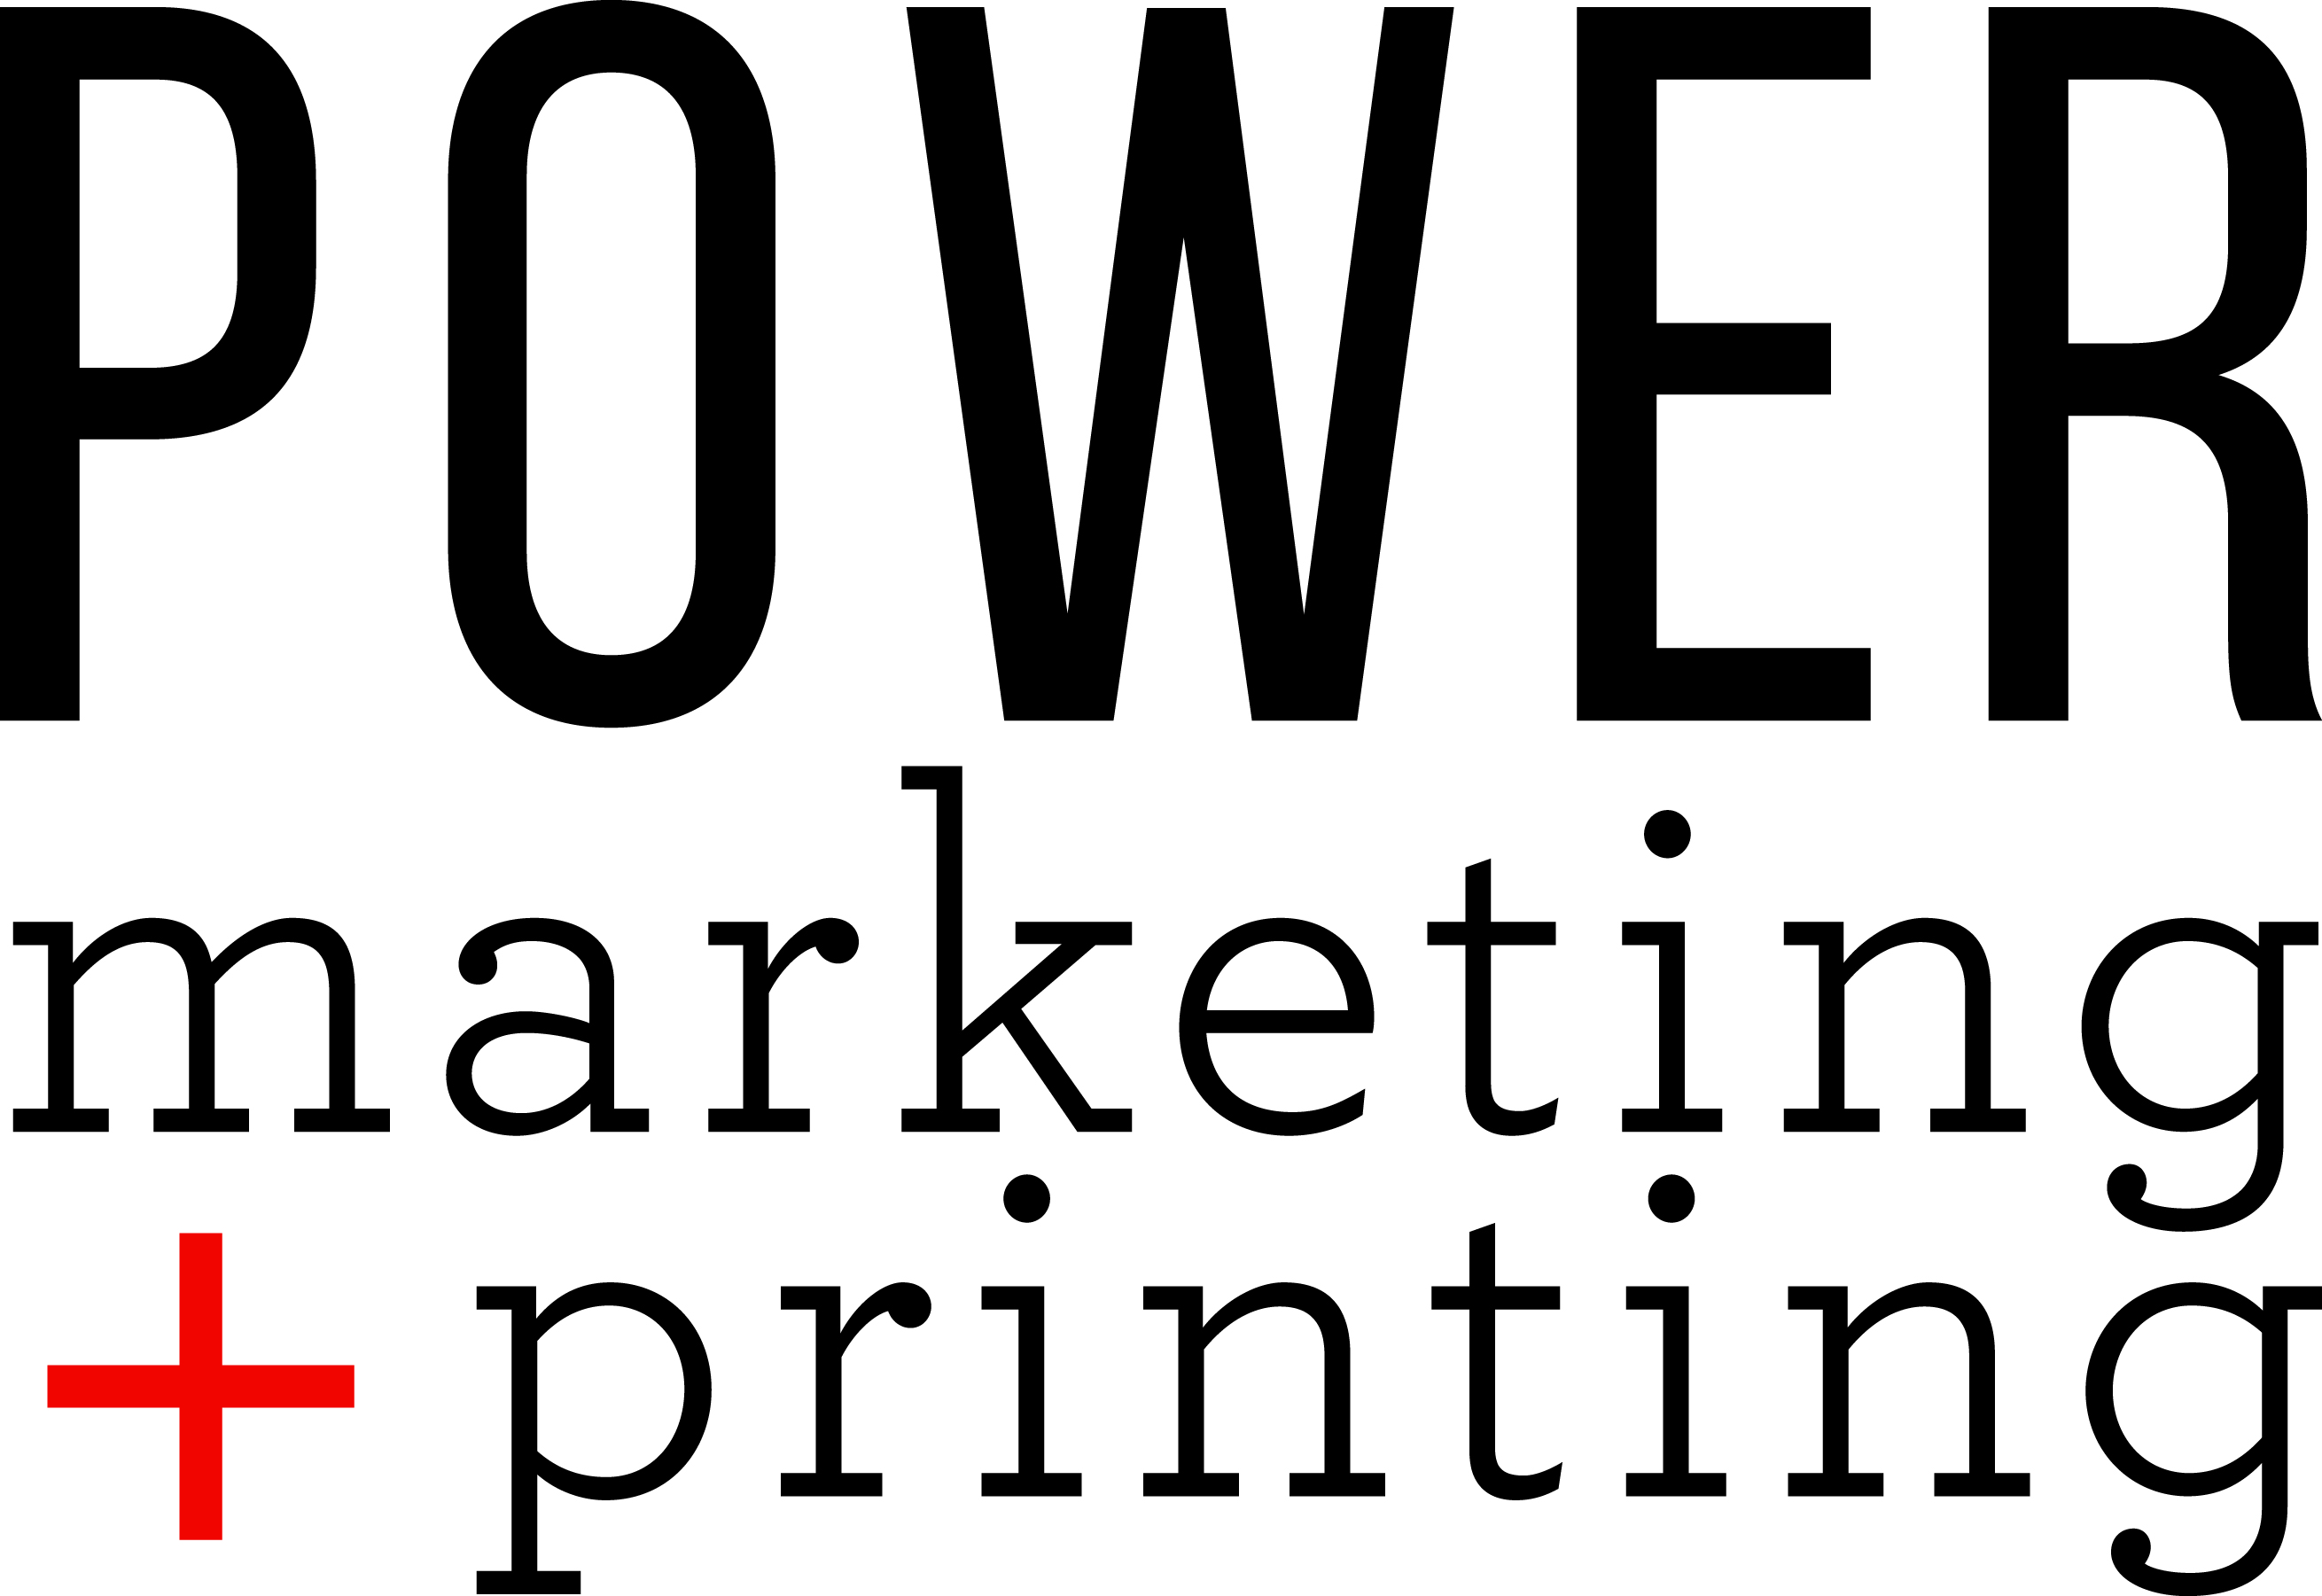 Power Marketing + Printing